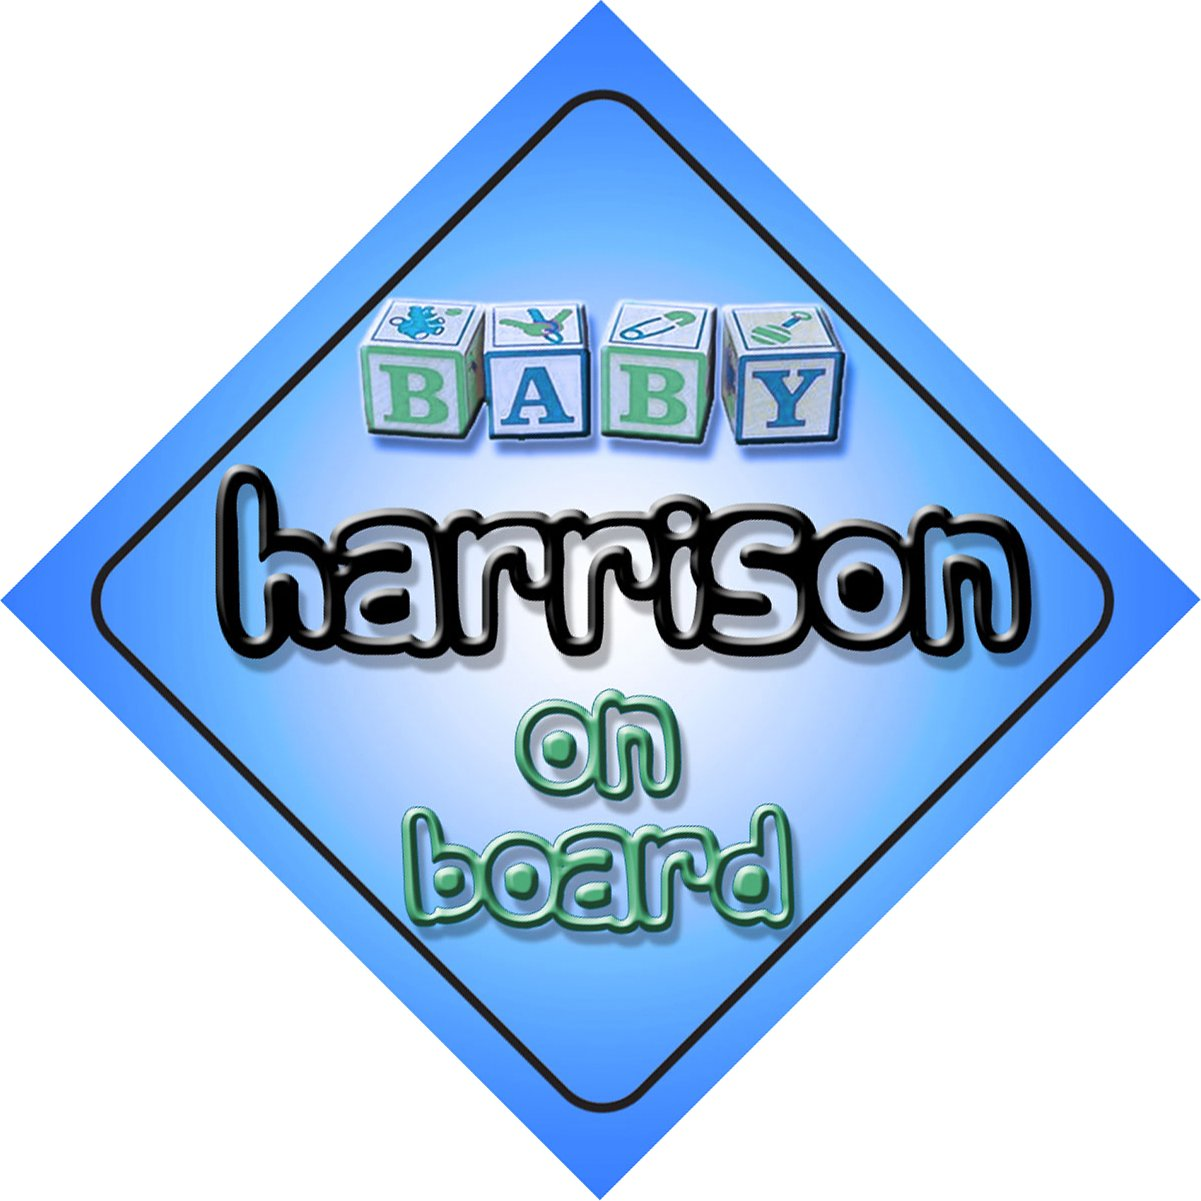 Baby Boy Harrison on board novelty car sign gift / present for new child / newborn baby Quality Goods Ltd